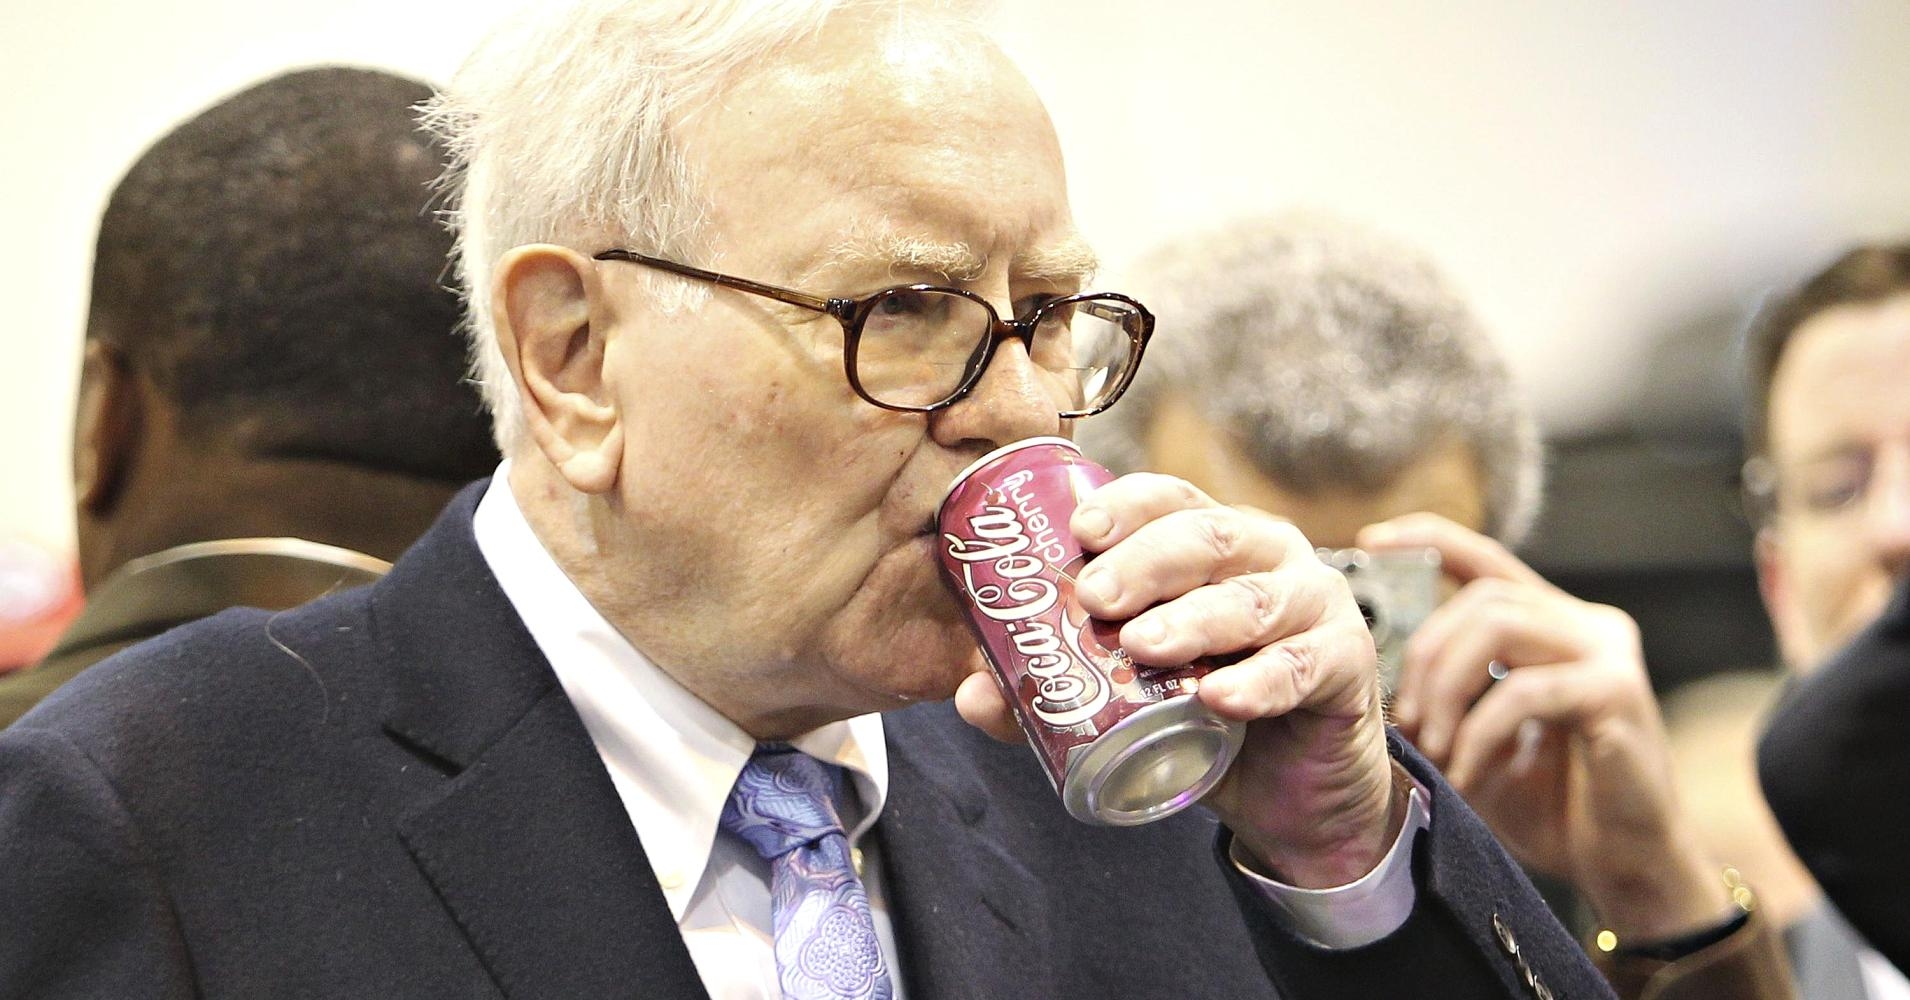 Warren Buffett Used To Drink Pepsi And 7 Other Surprising Facts About The Billionaire photo